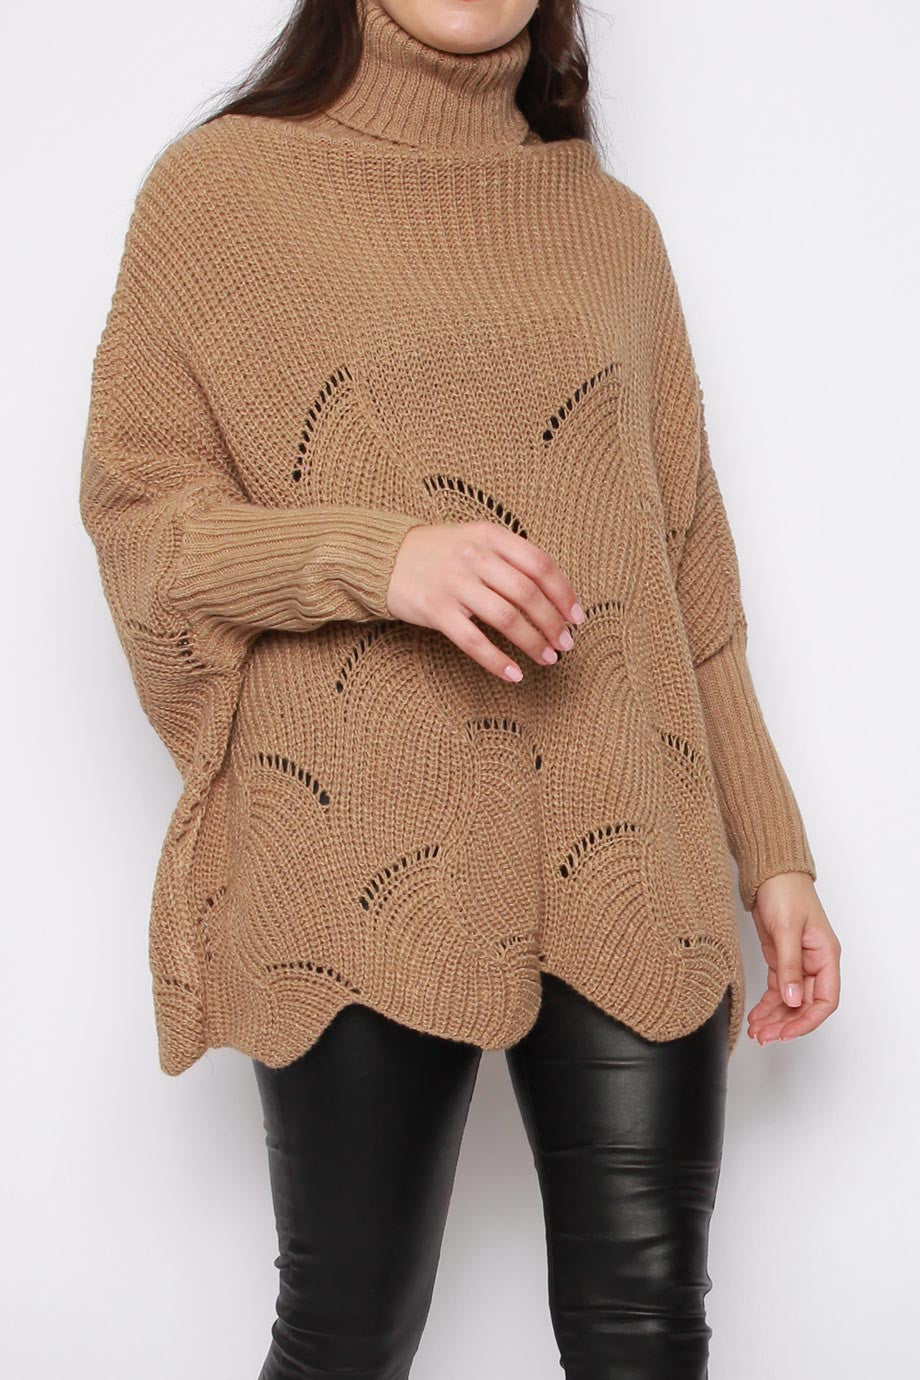 Wool Blend High Neck Oversized Pattern Knitted Longline Jumper